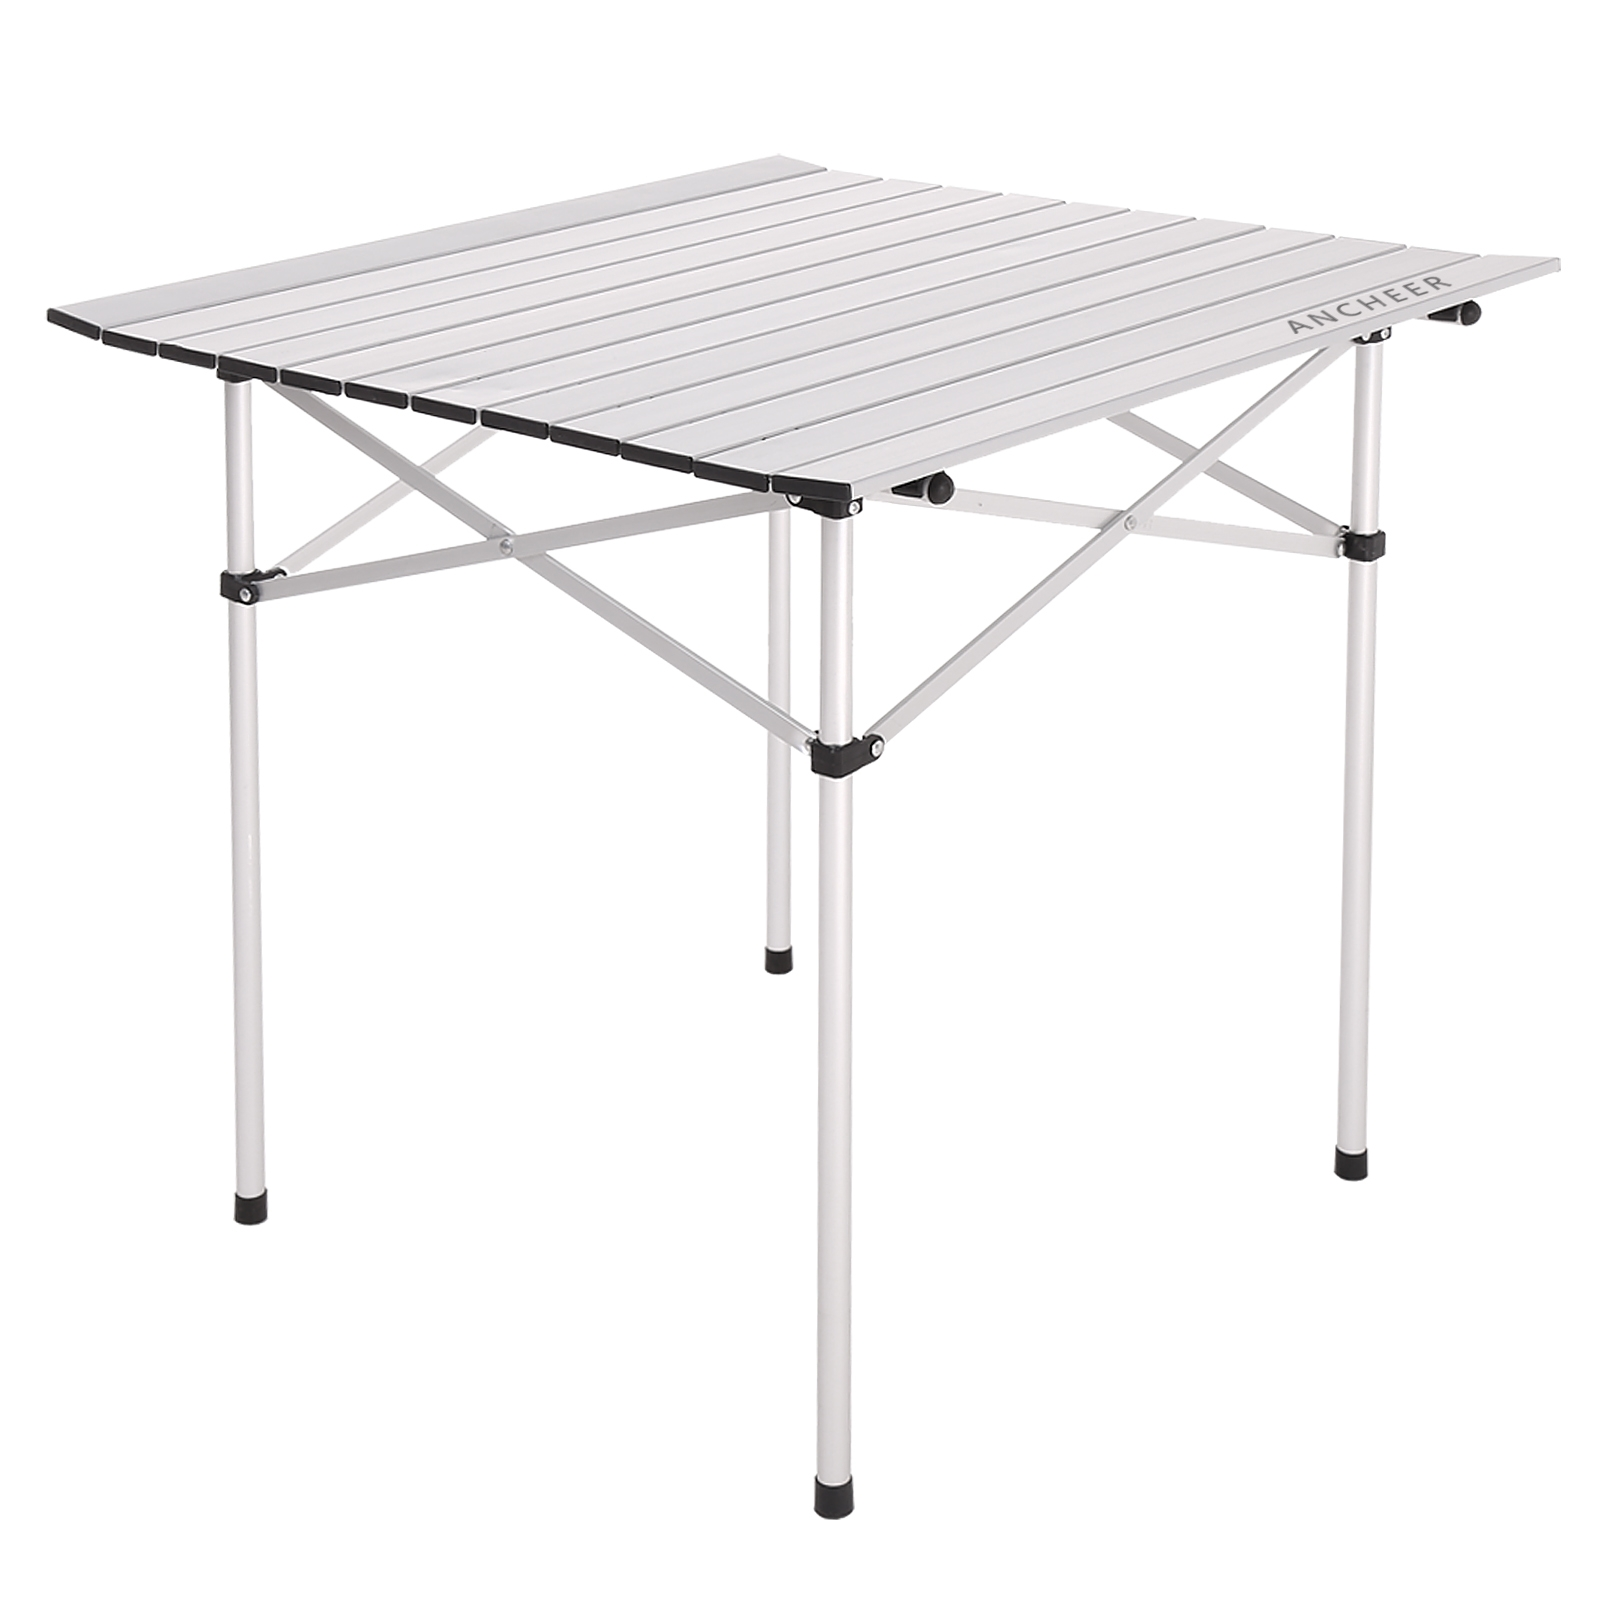 Camping Table Outdoor Portable Roll Up Folding Picnic Table Garden Yard BYE by